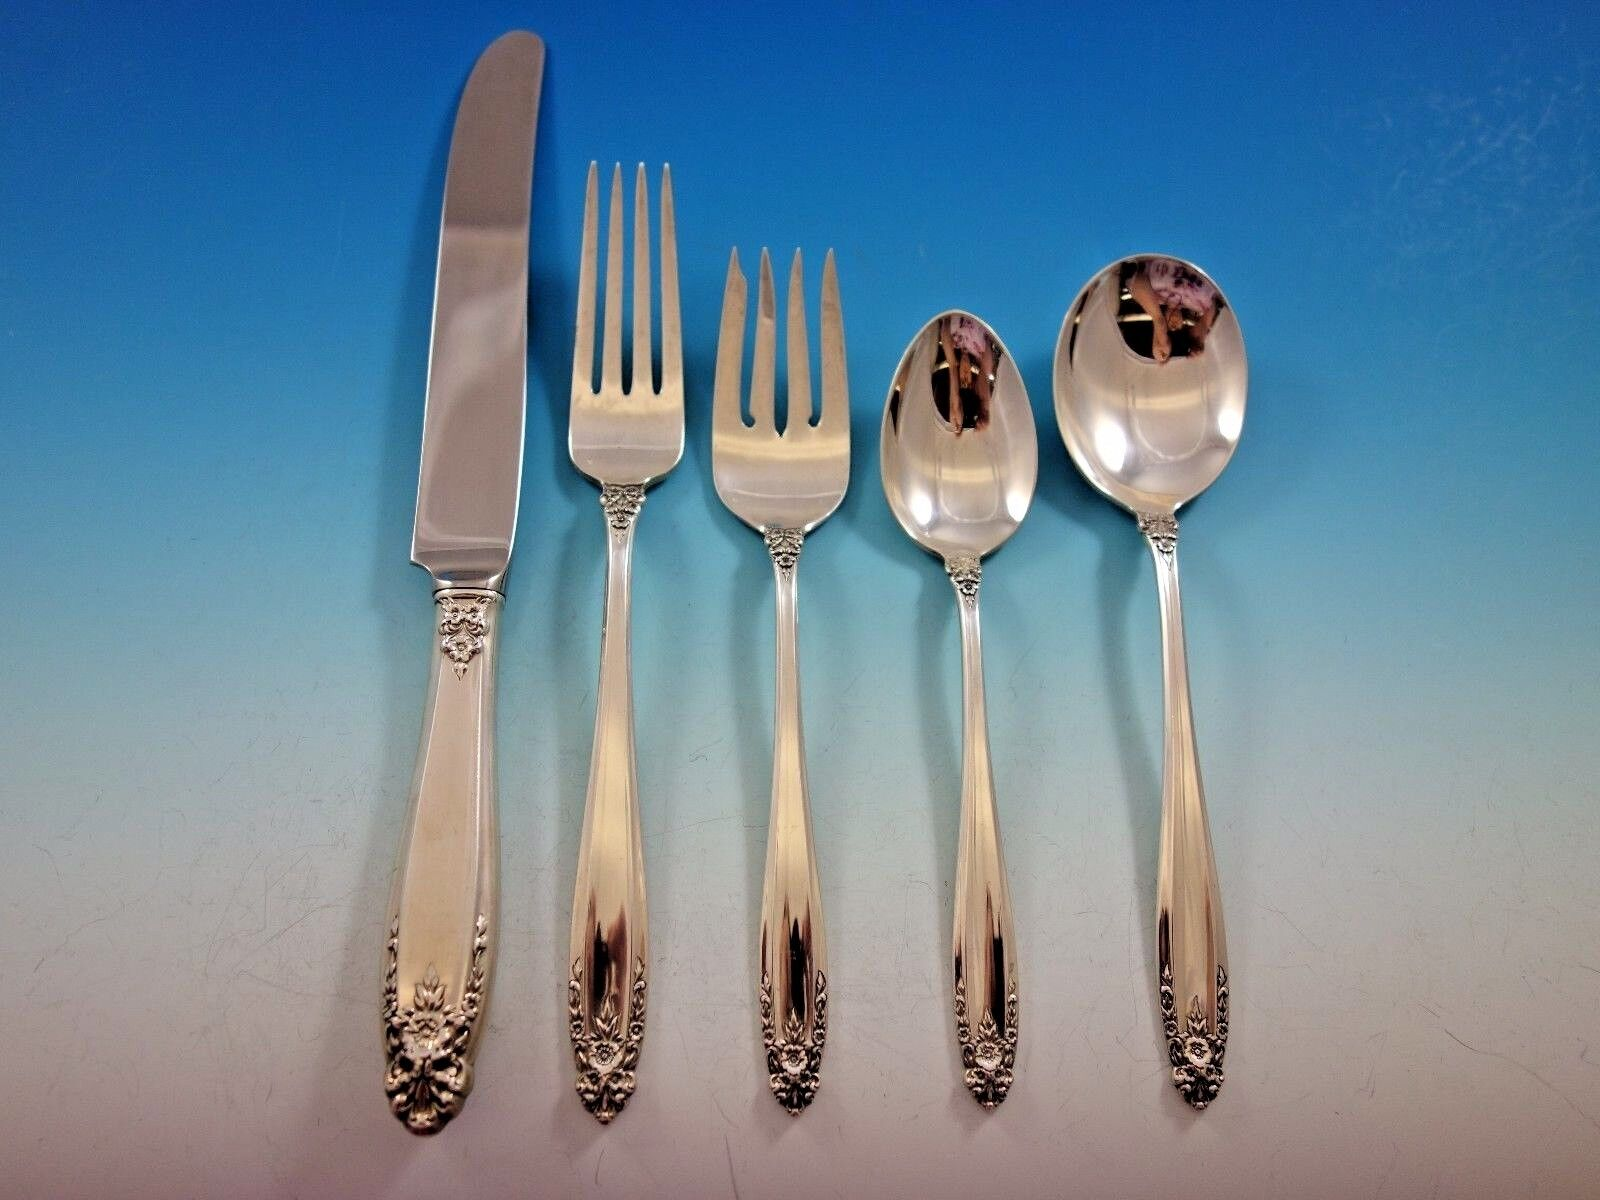 Prelude by International Sterling Silver Flatware Set For 8 Service 45 Pieces